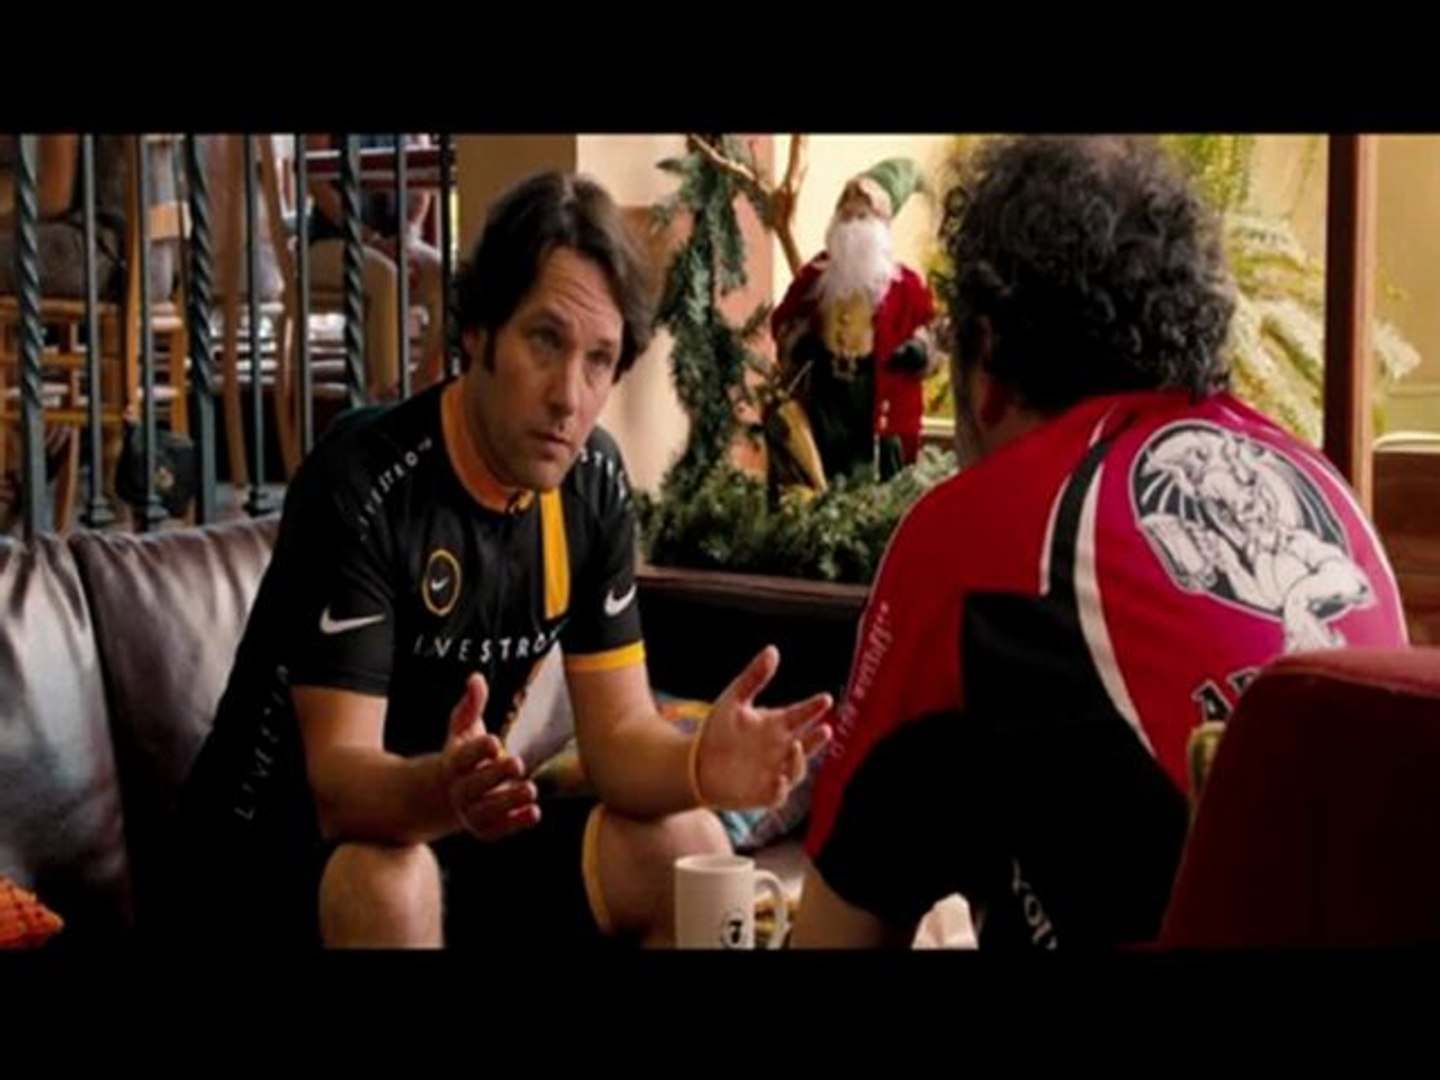 This is 40 Full Movie Part 1 2012 Full Movie Leaked Long Movie